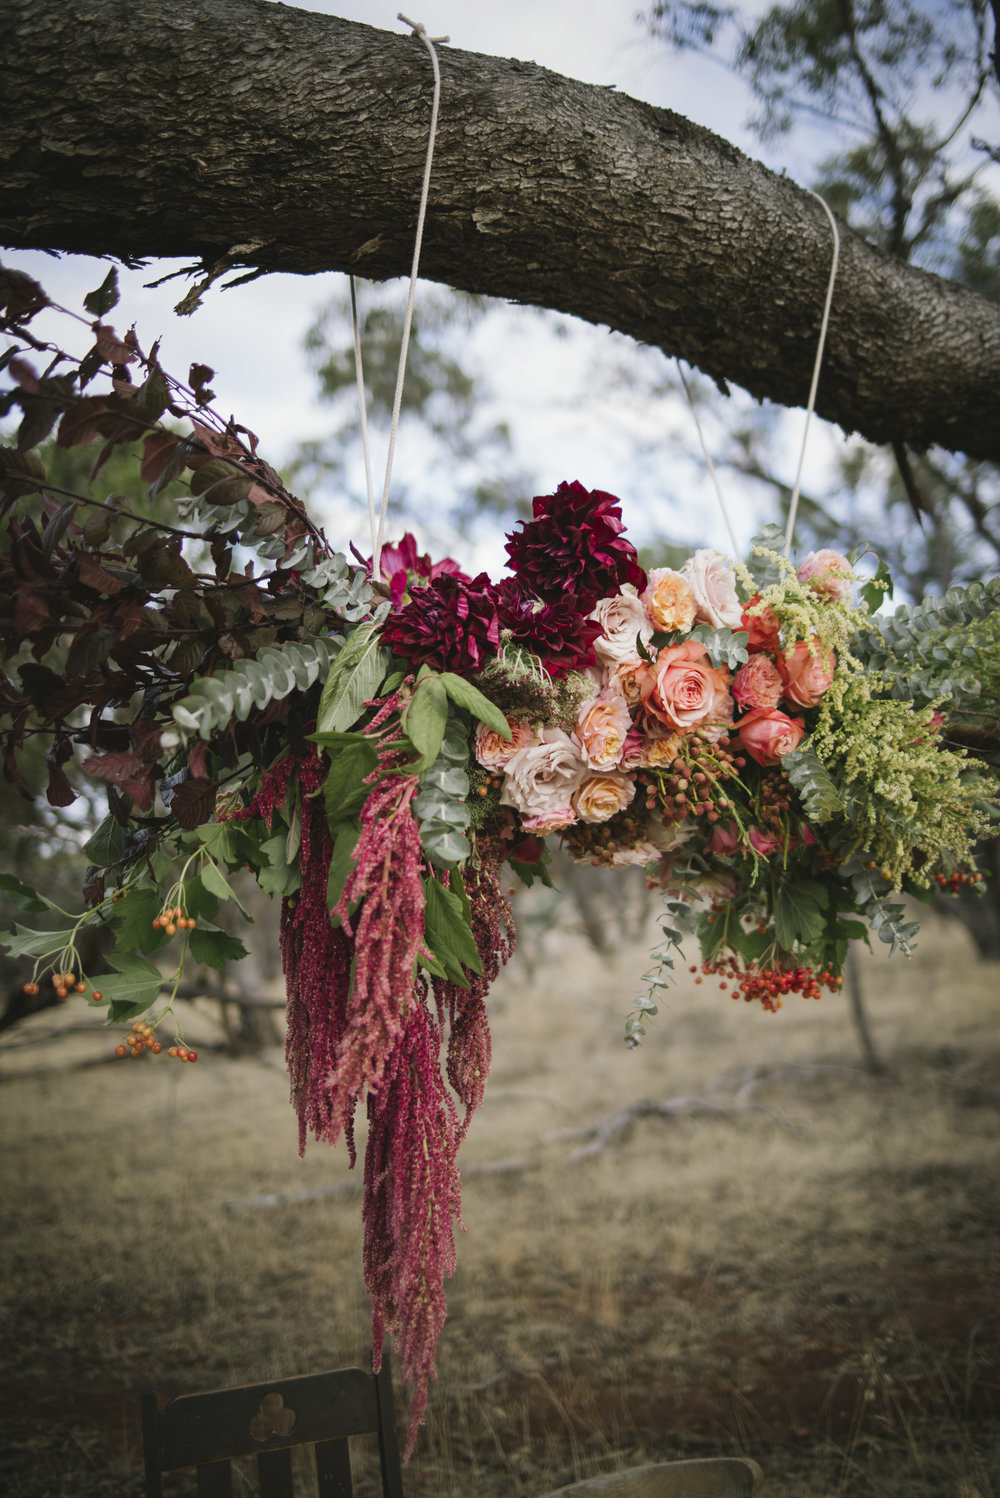 Wheatbelt Collective Rustic Rural Farm Boho Wedding York Northam (19).jpg